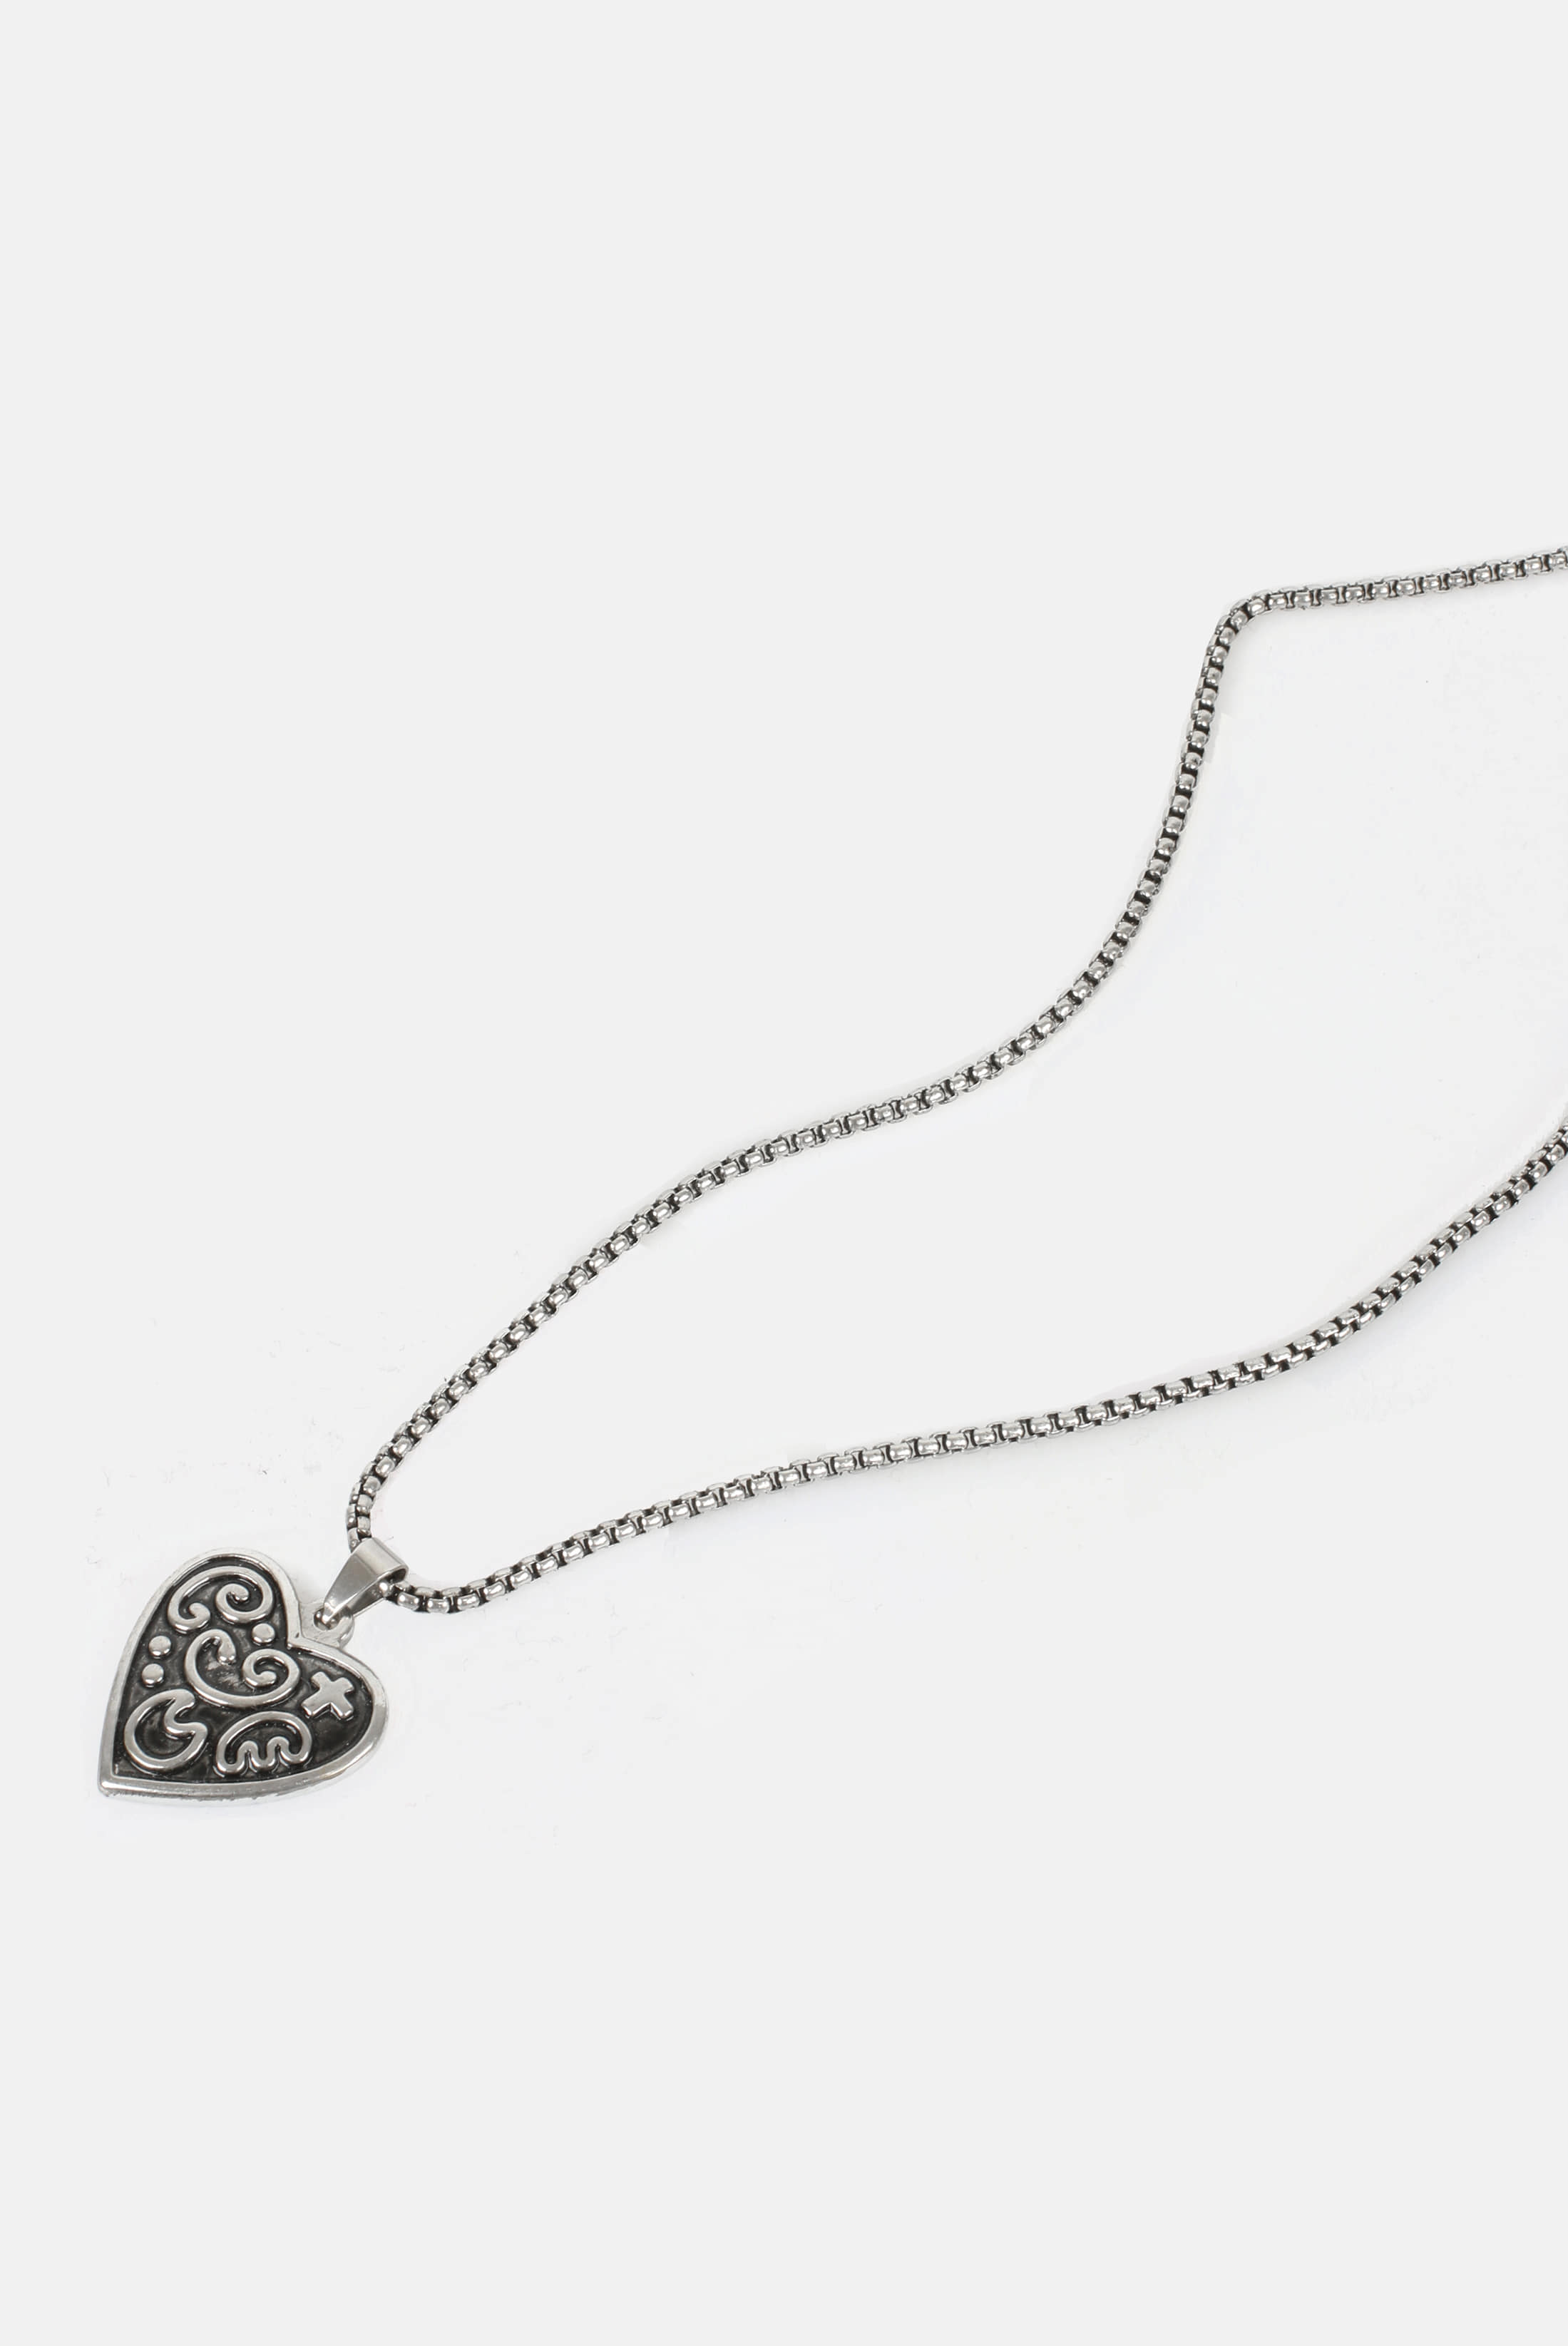 Dark_Washing Heart_Necklace